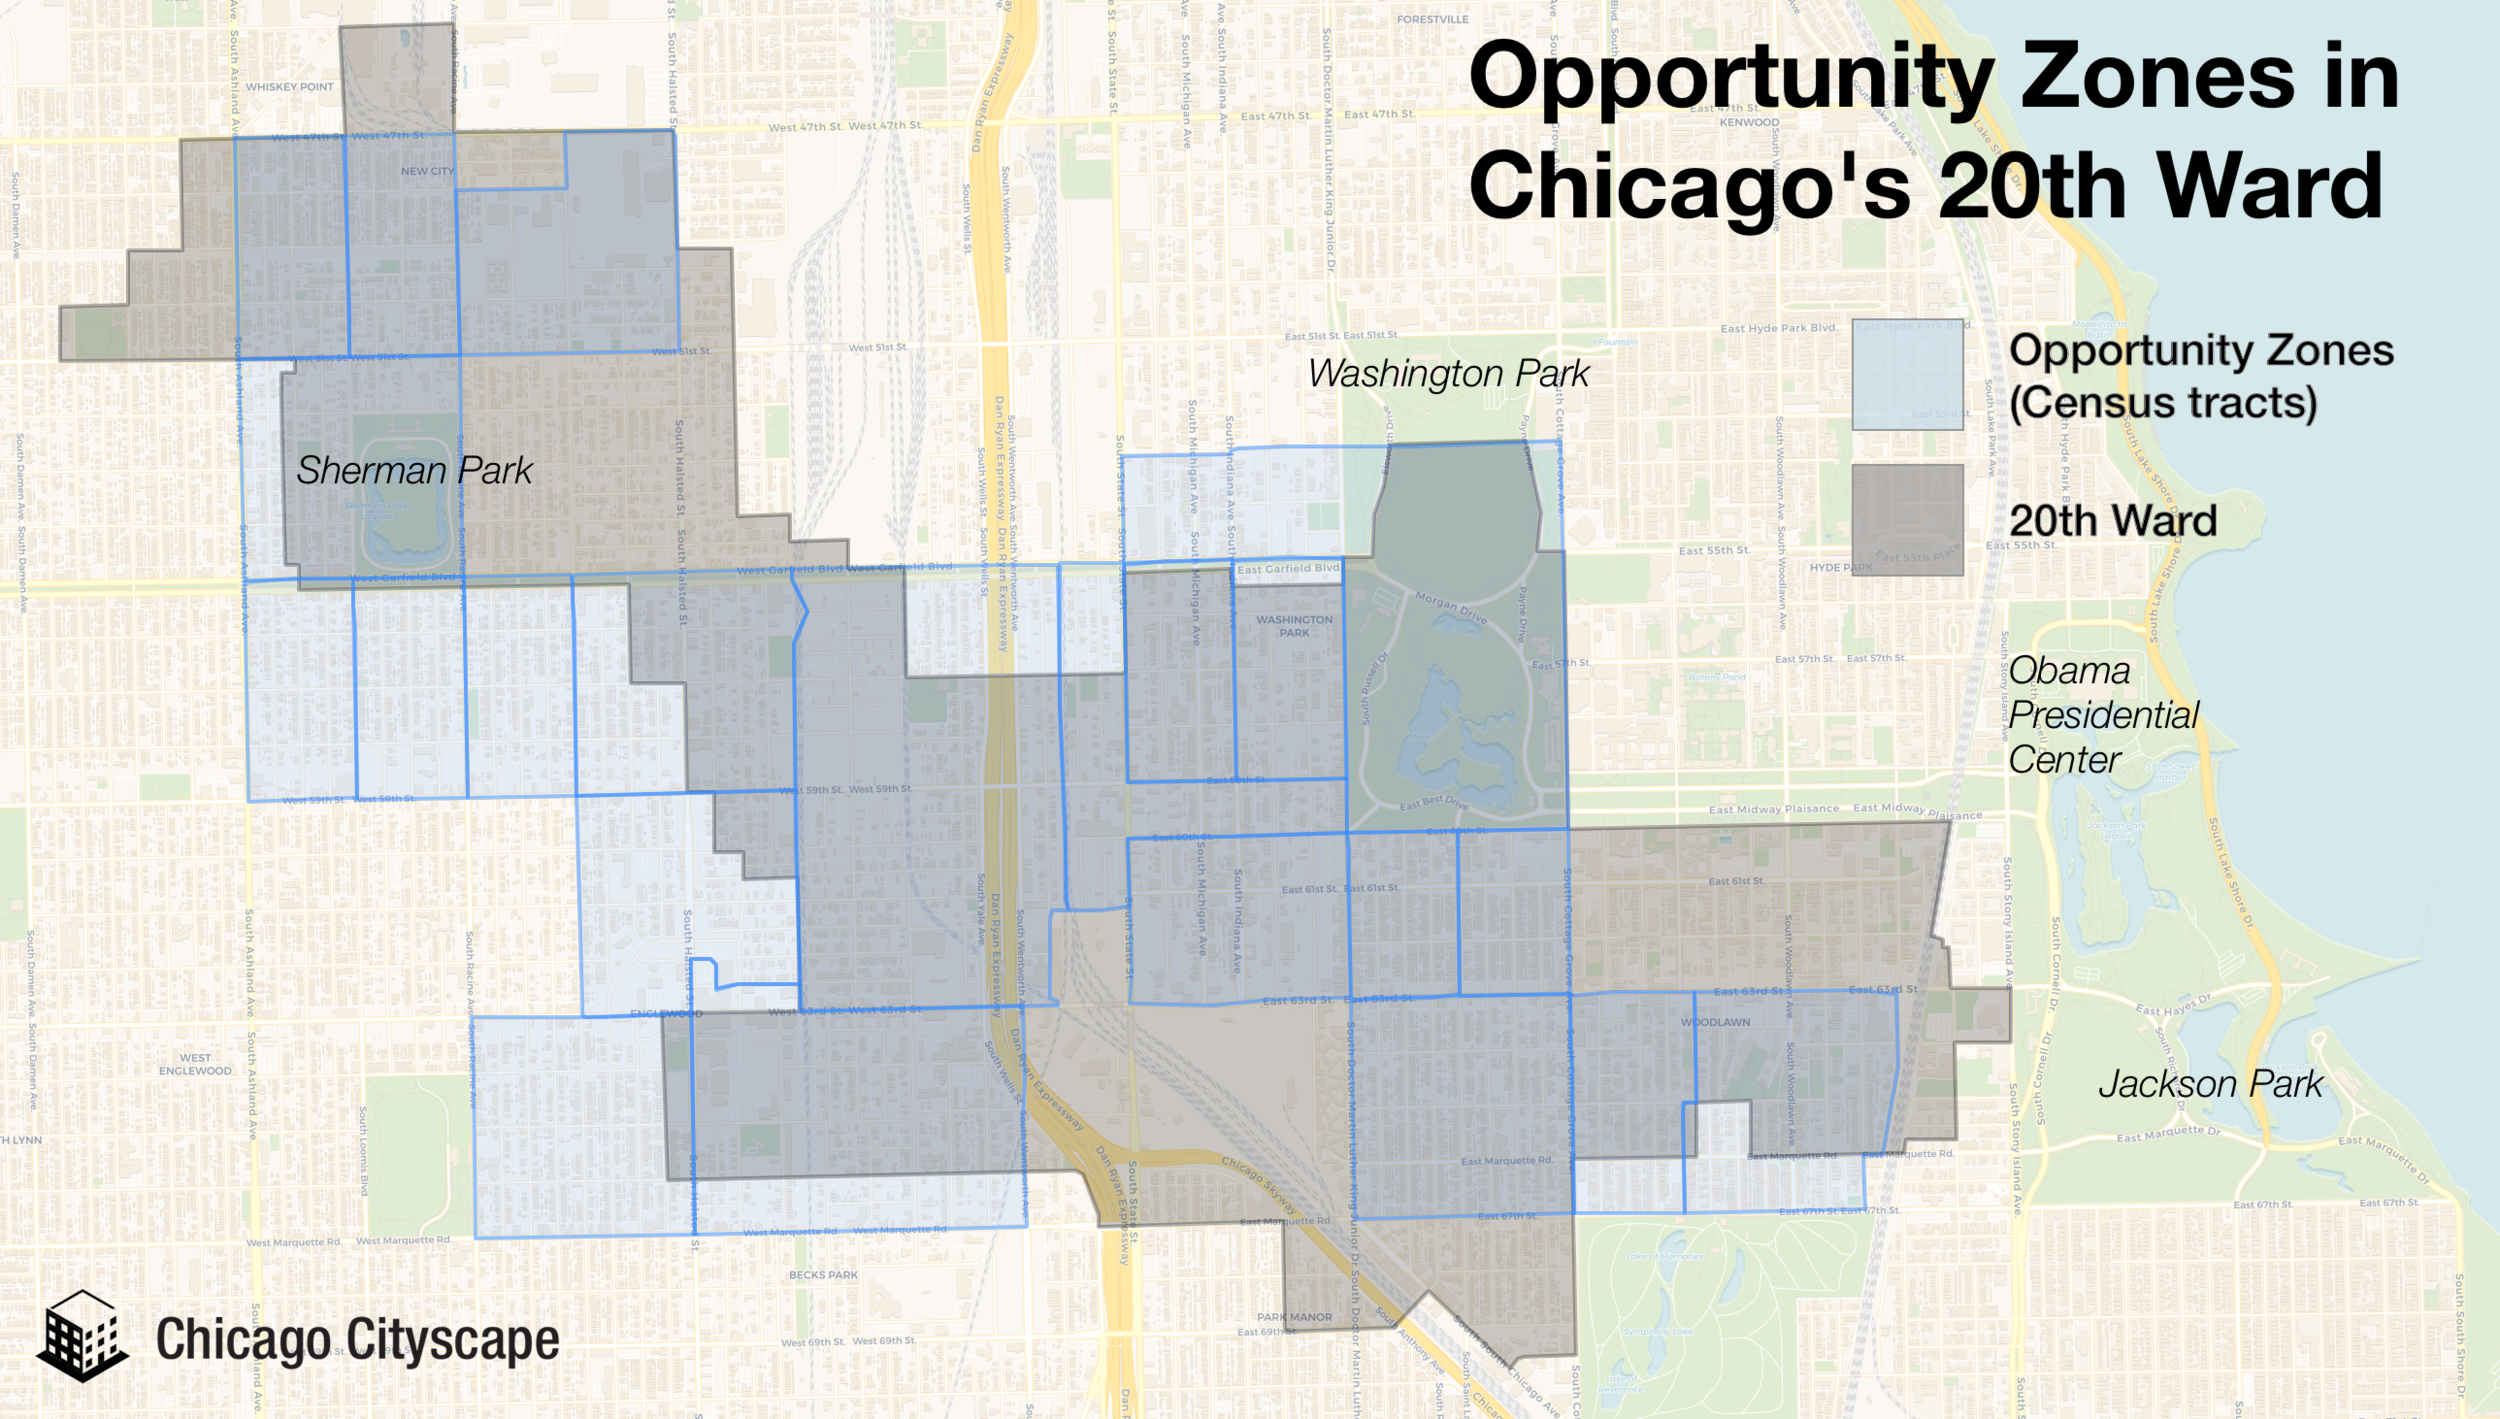 Take the 20th Ward for example, where 67% of the ward is in an Opportunity Zone (however, two large parks and expressway and railroad right of way occupy a large portion).